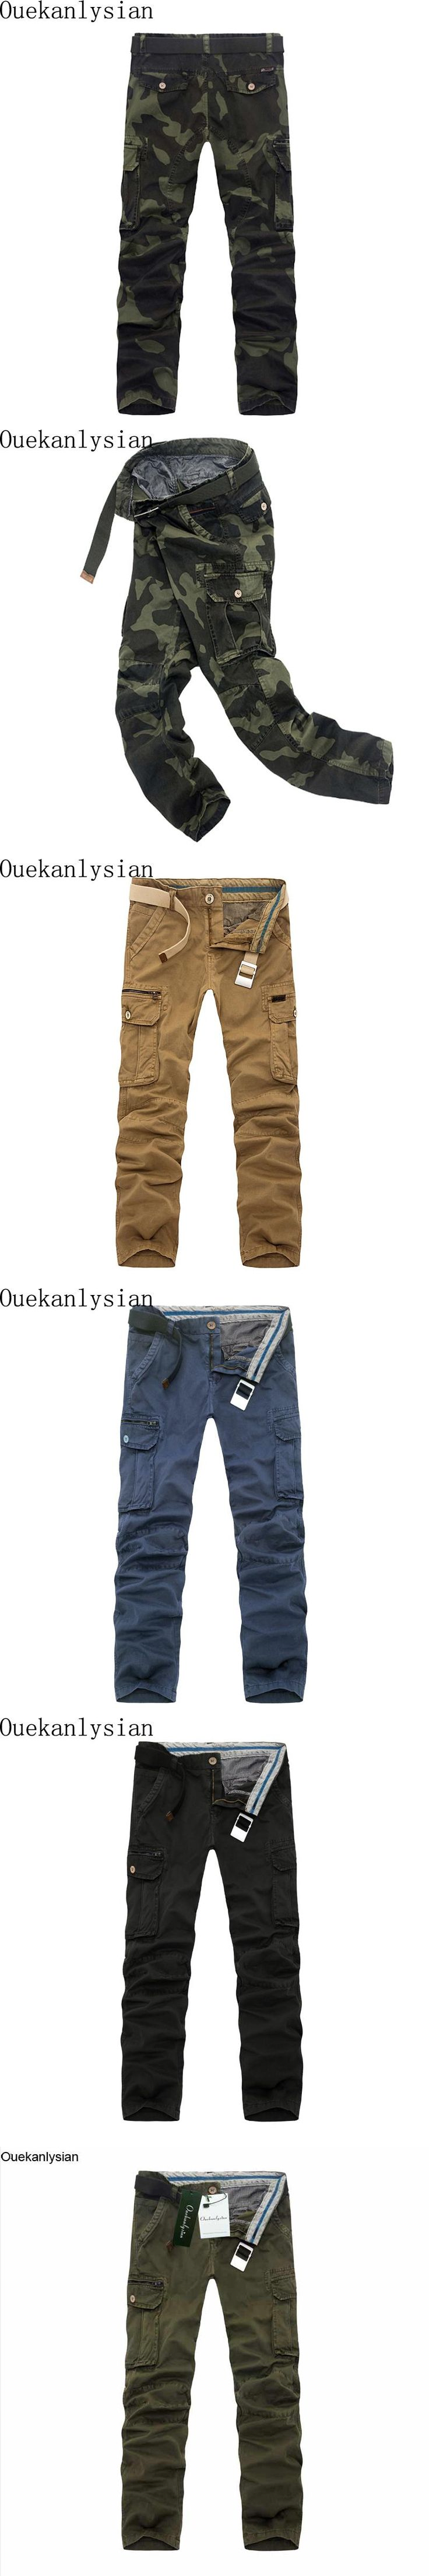 Ouekanlysian 90% Cotton Camouflage Cargo Pant Men Loose Multi Pockets Military Army Camo Pant Tactical Overalls Pantalones Hombr